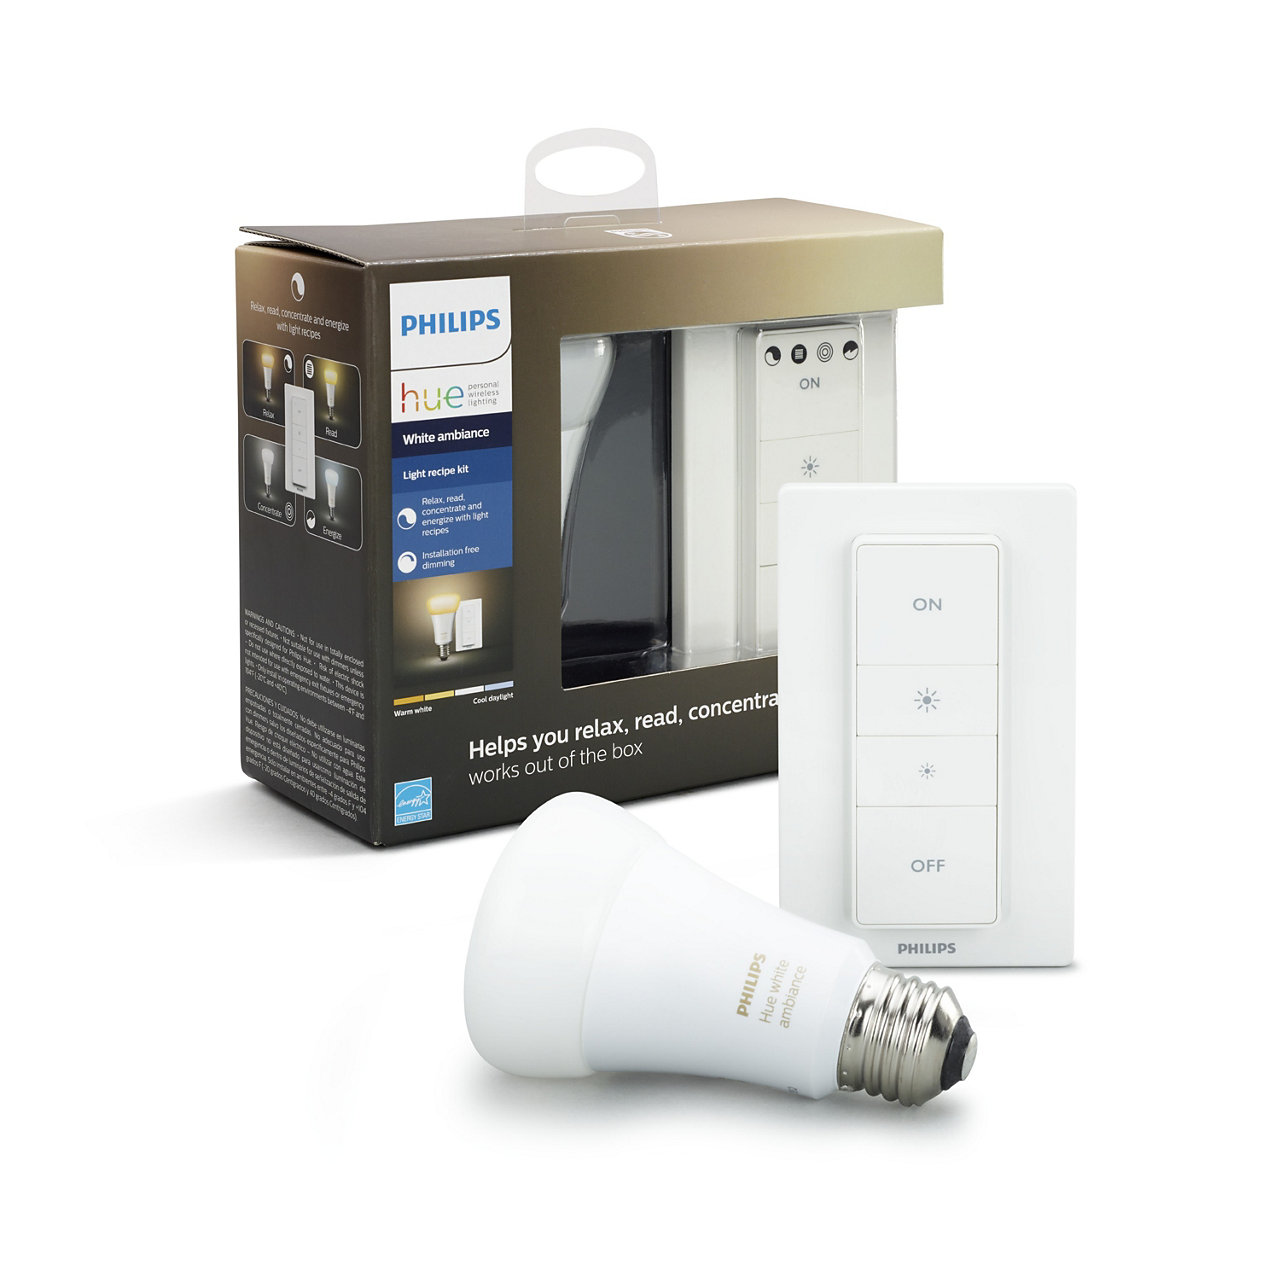 Enter to win 1 of 10 Hue white ambiance light recipe kits Giveaway Image